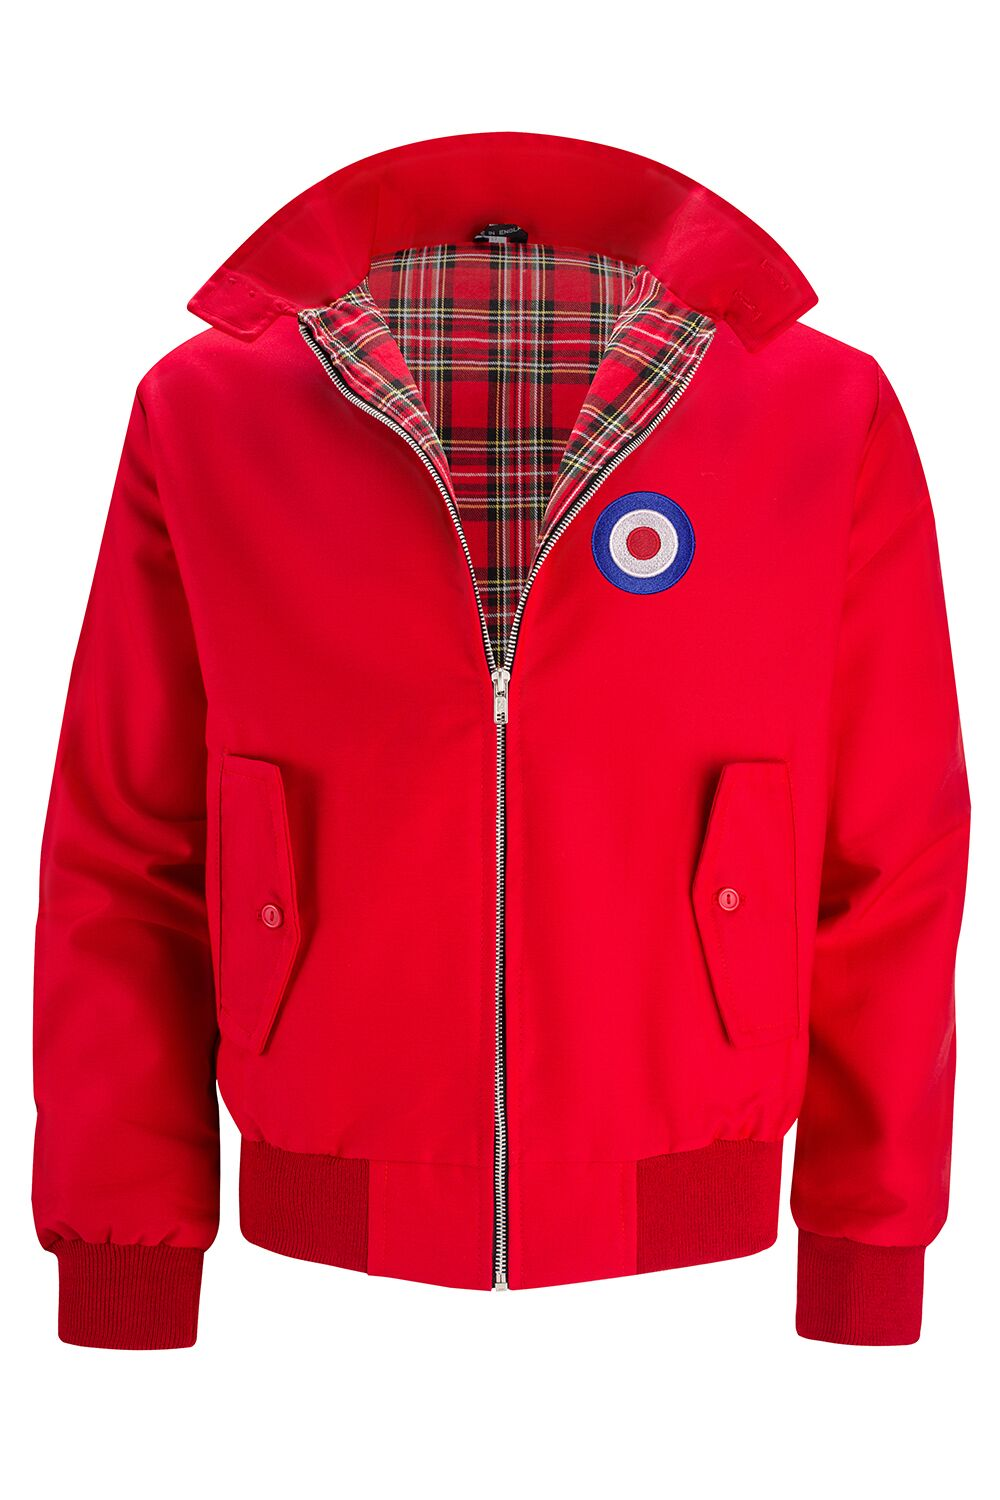 Classic Harrington Jacket - Red (with MOD badge)